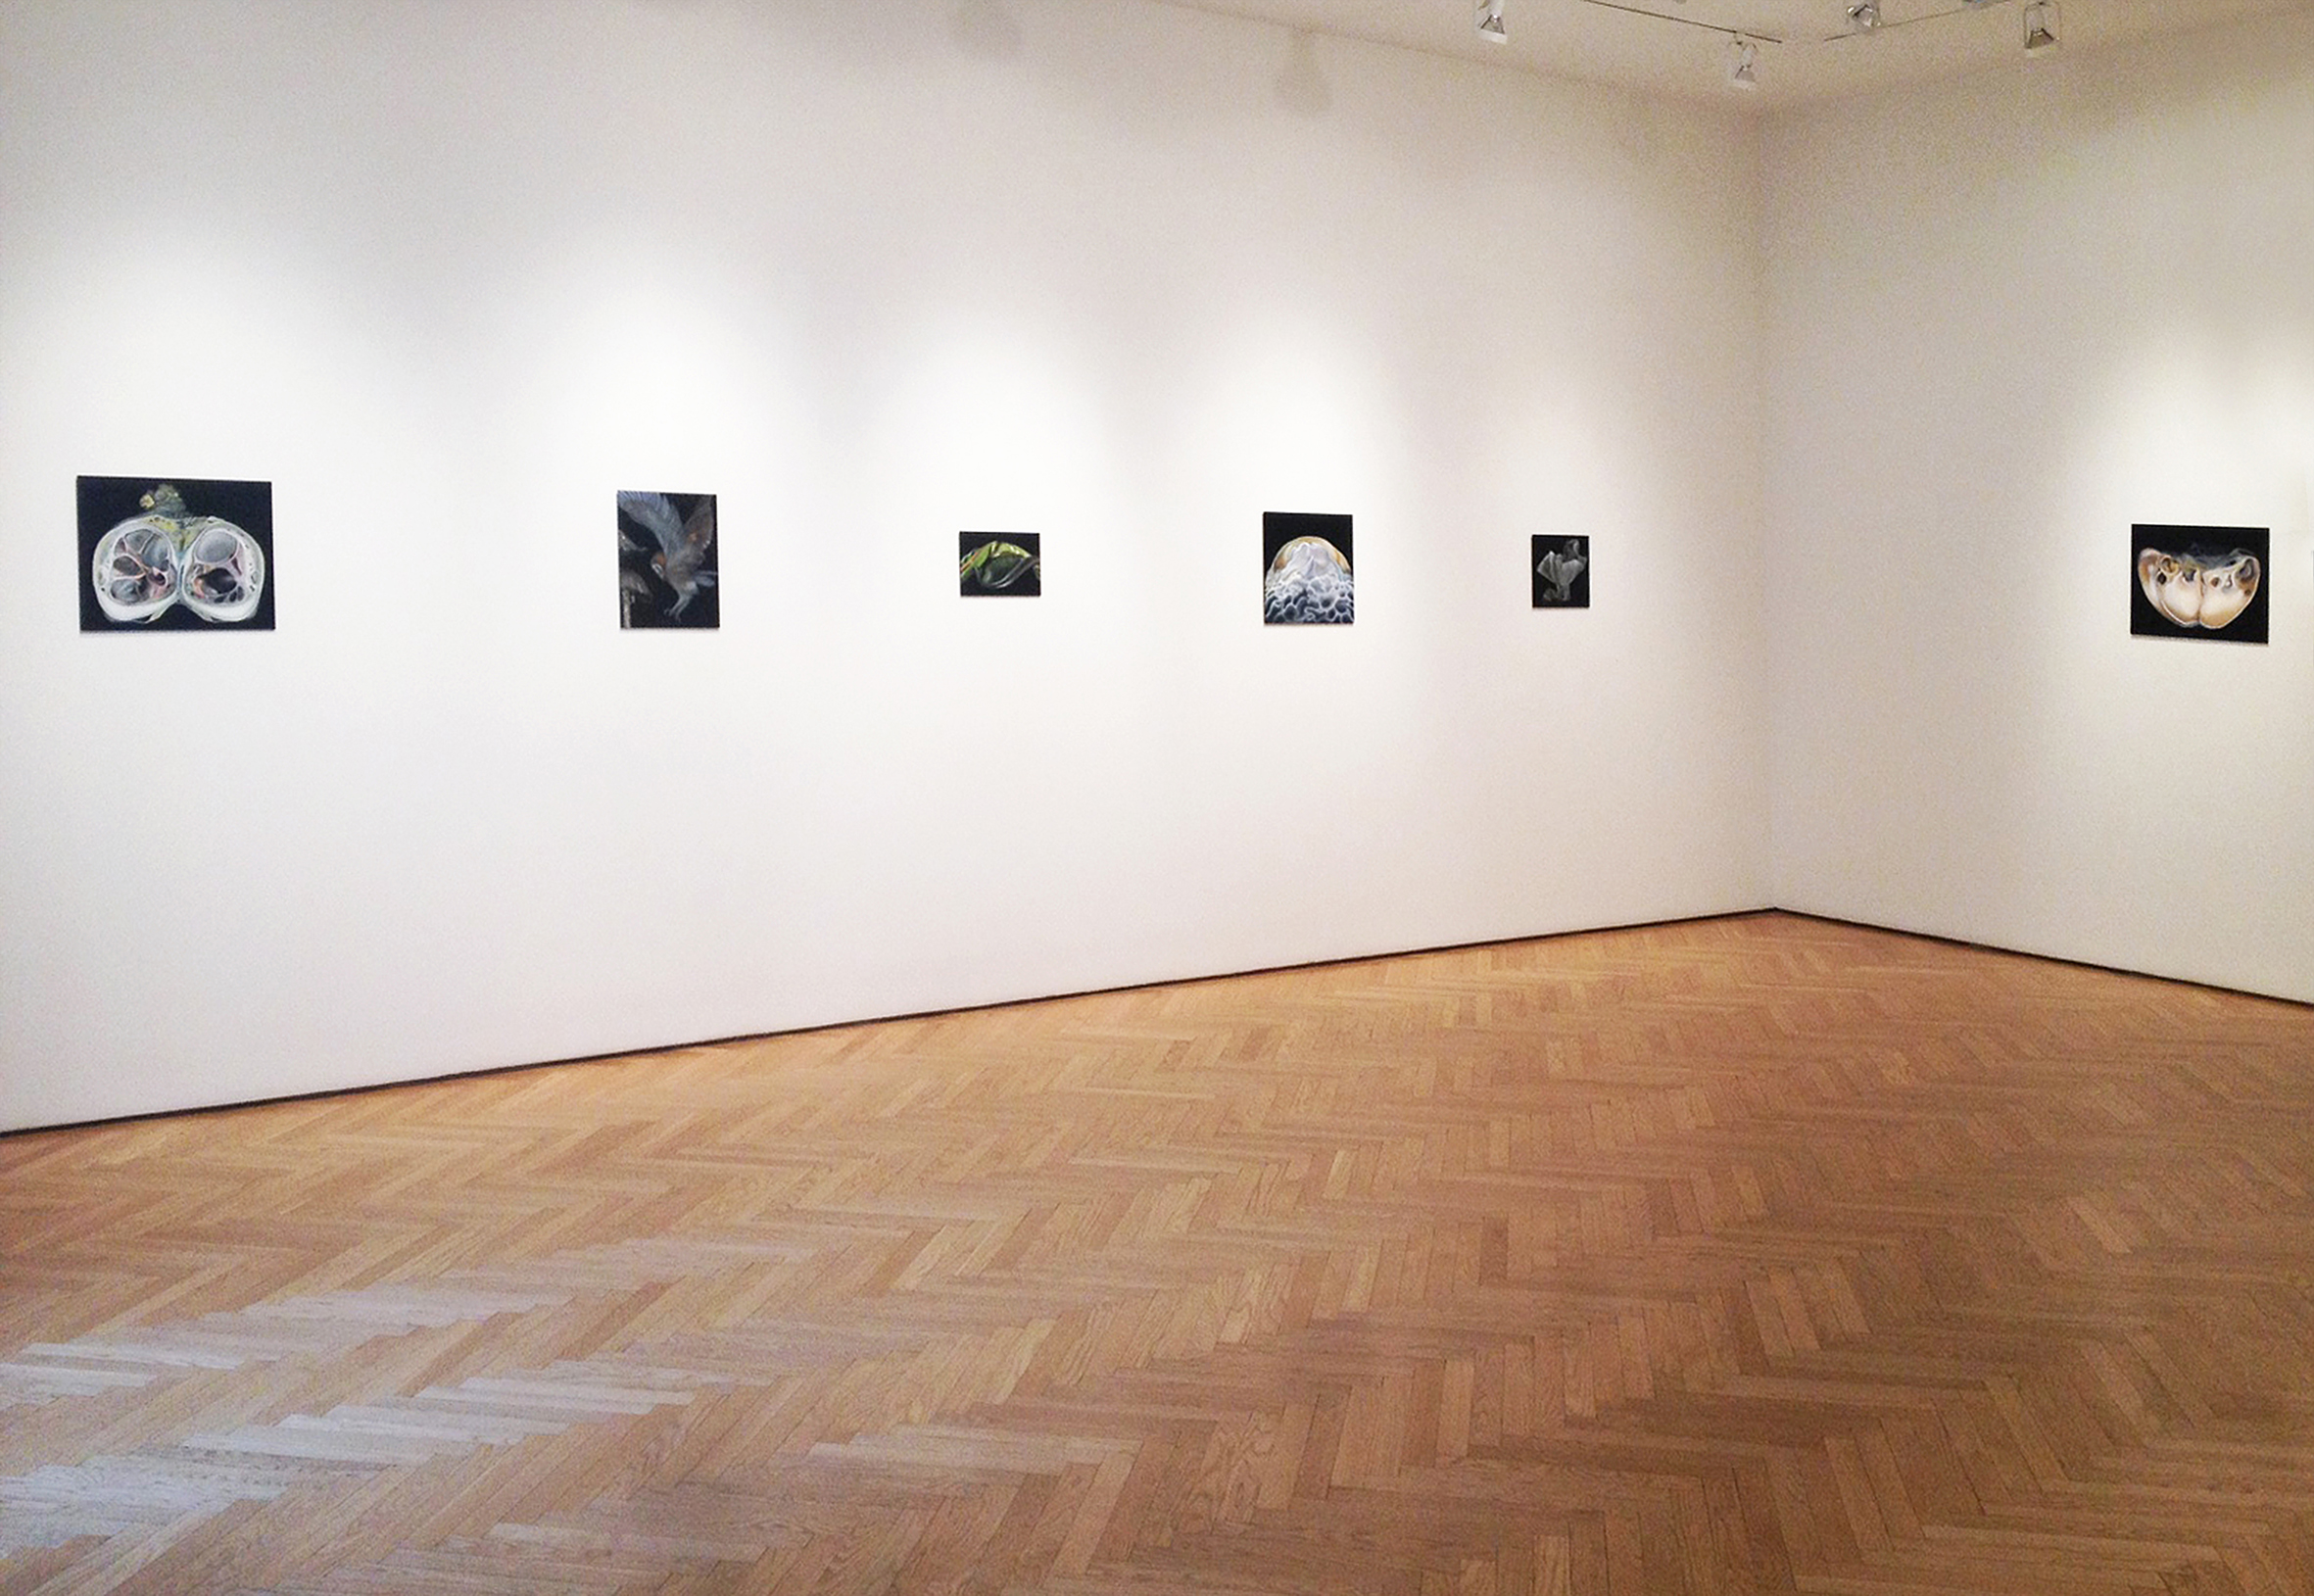 Copy of Stellan Holm gallery, 2014, New York